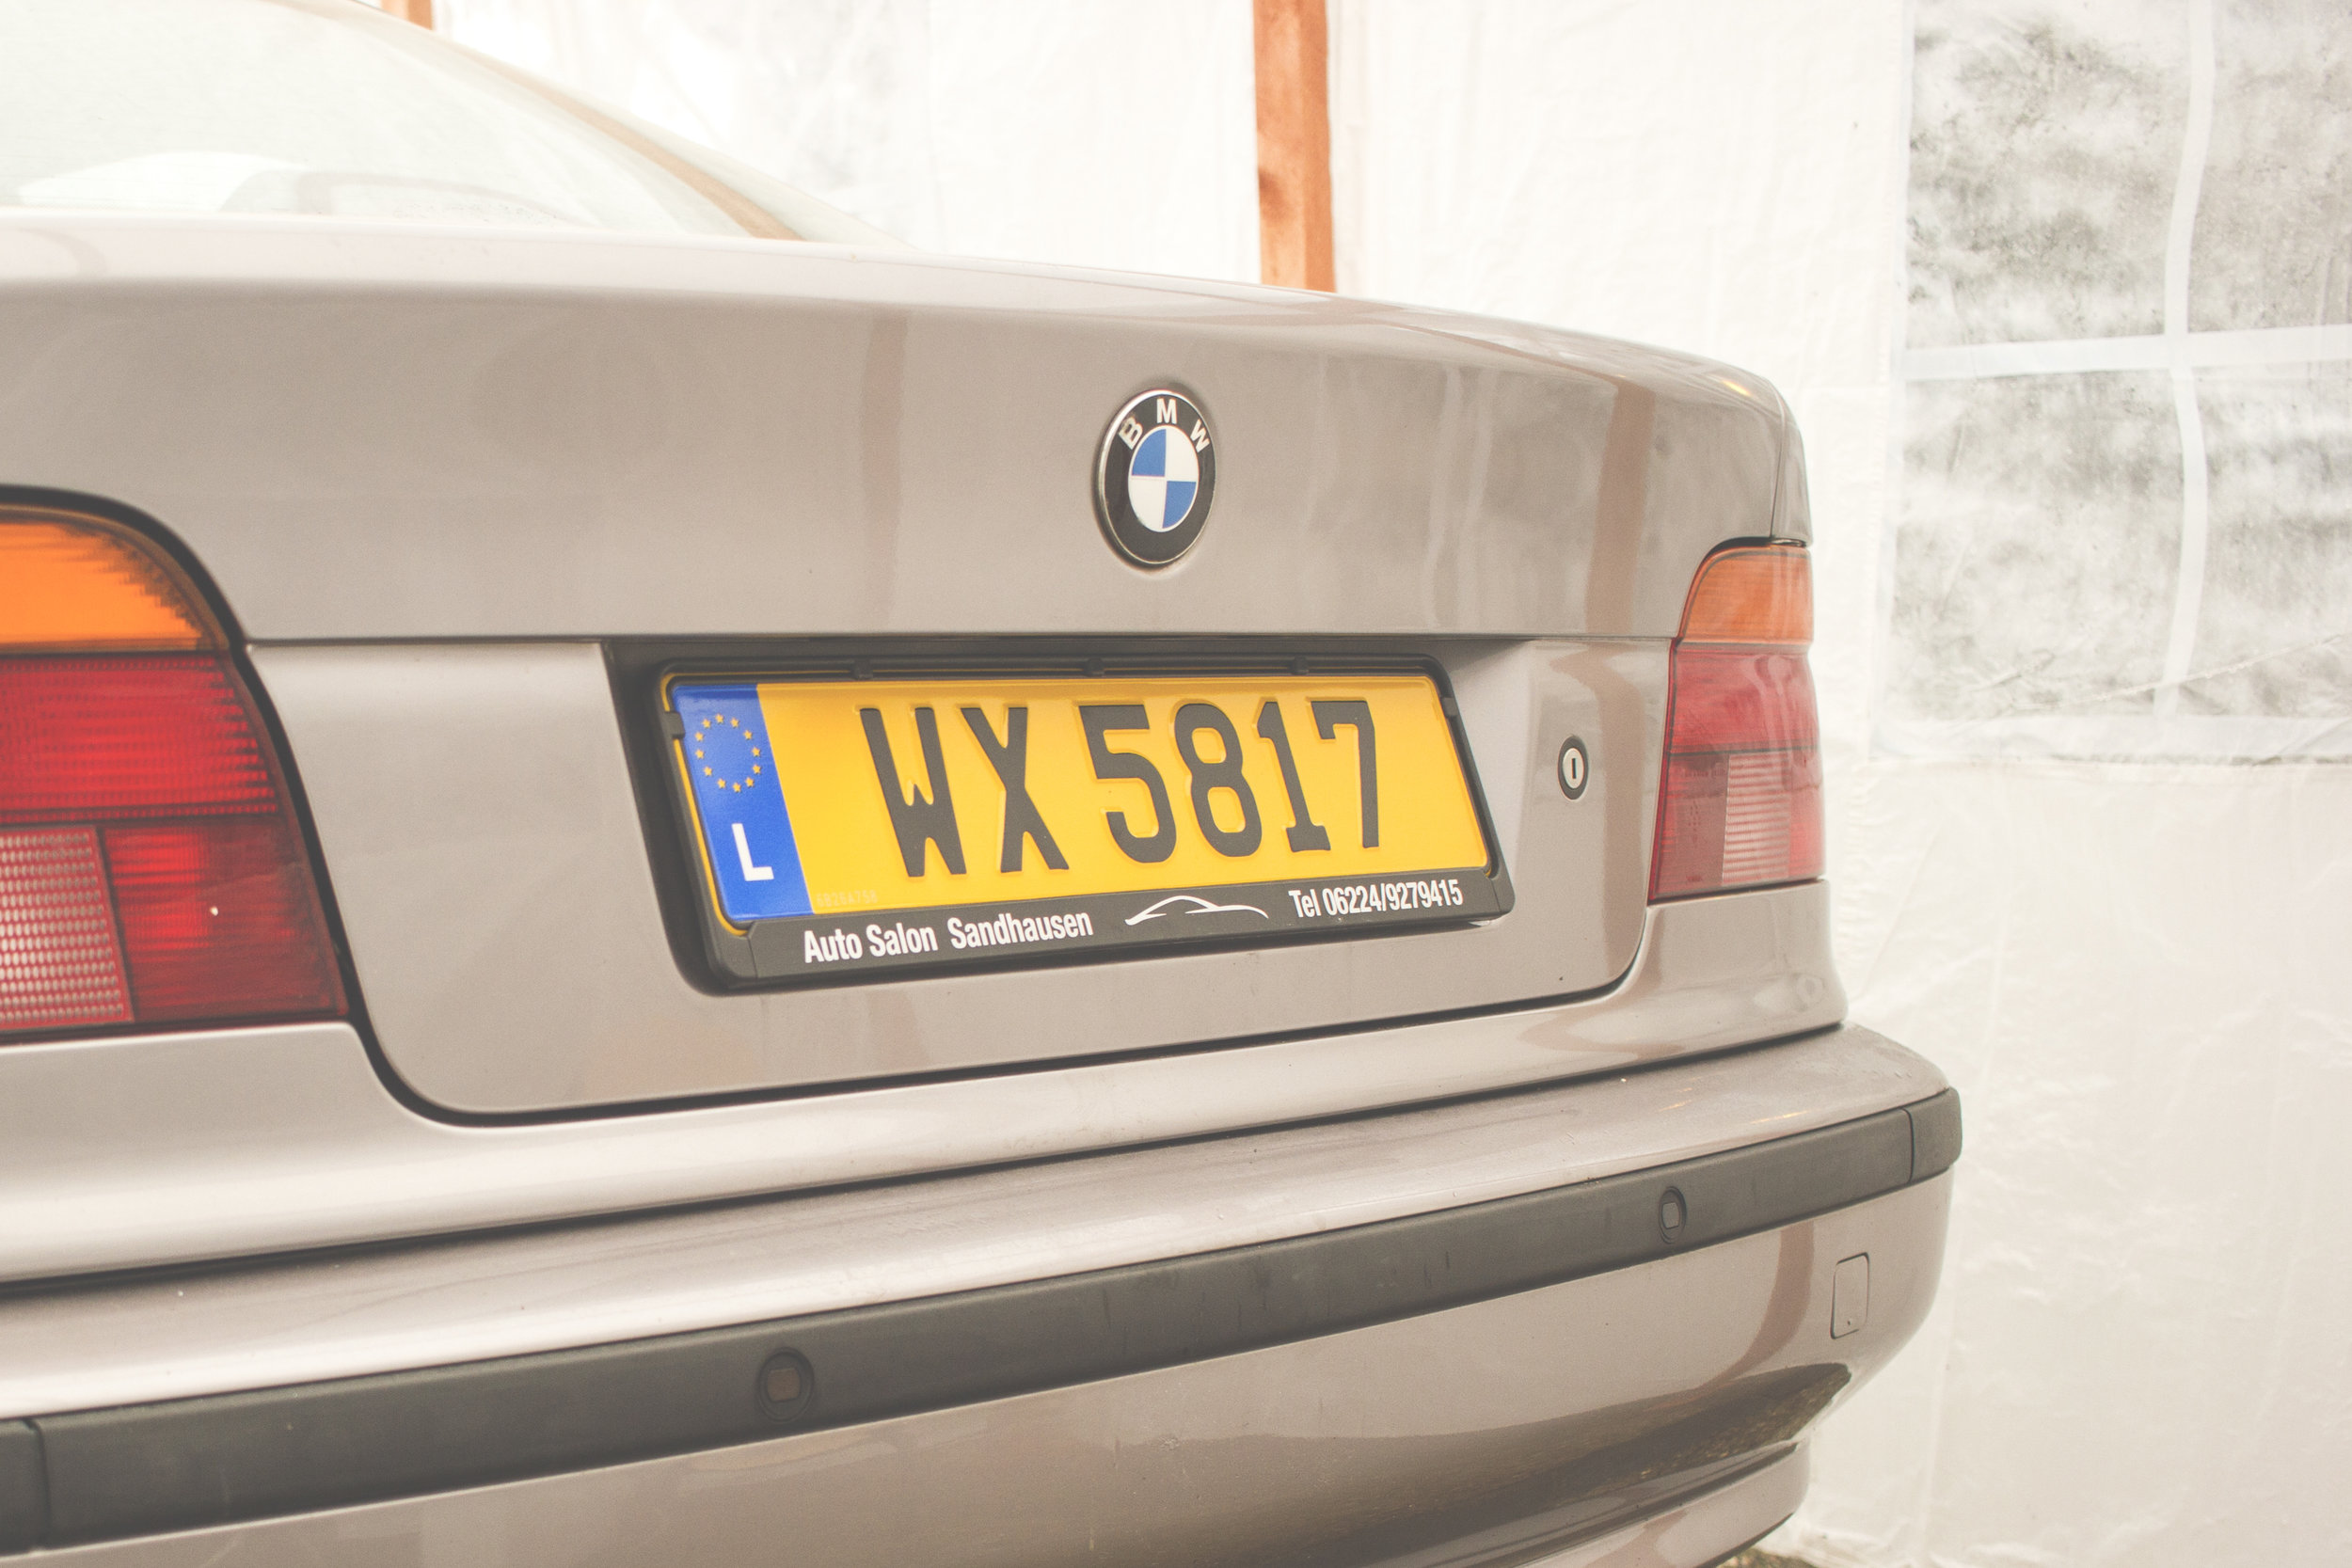 Mömus BMW E39 Exterior Rear Back Aspen Silver Auto Detailing All Cleaned Up